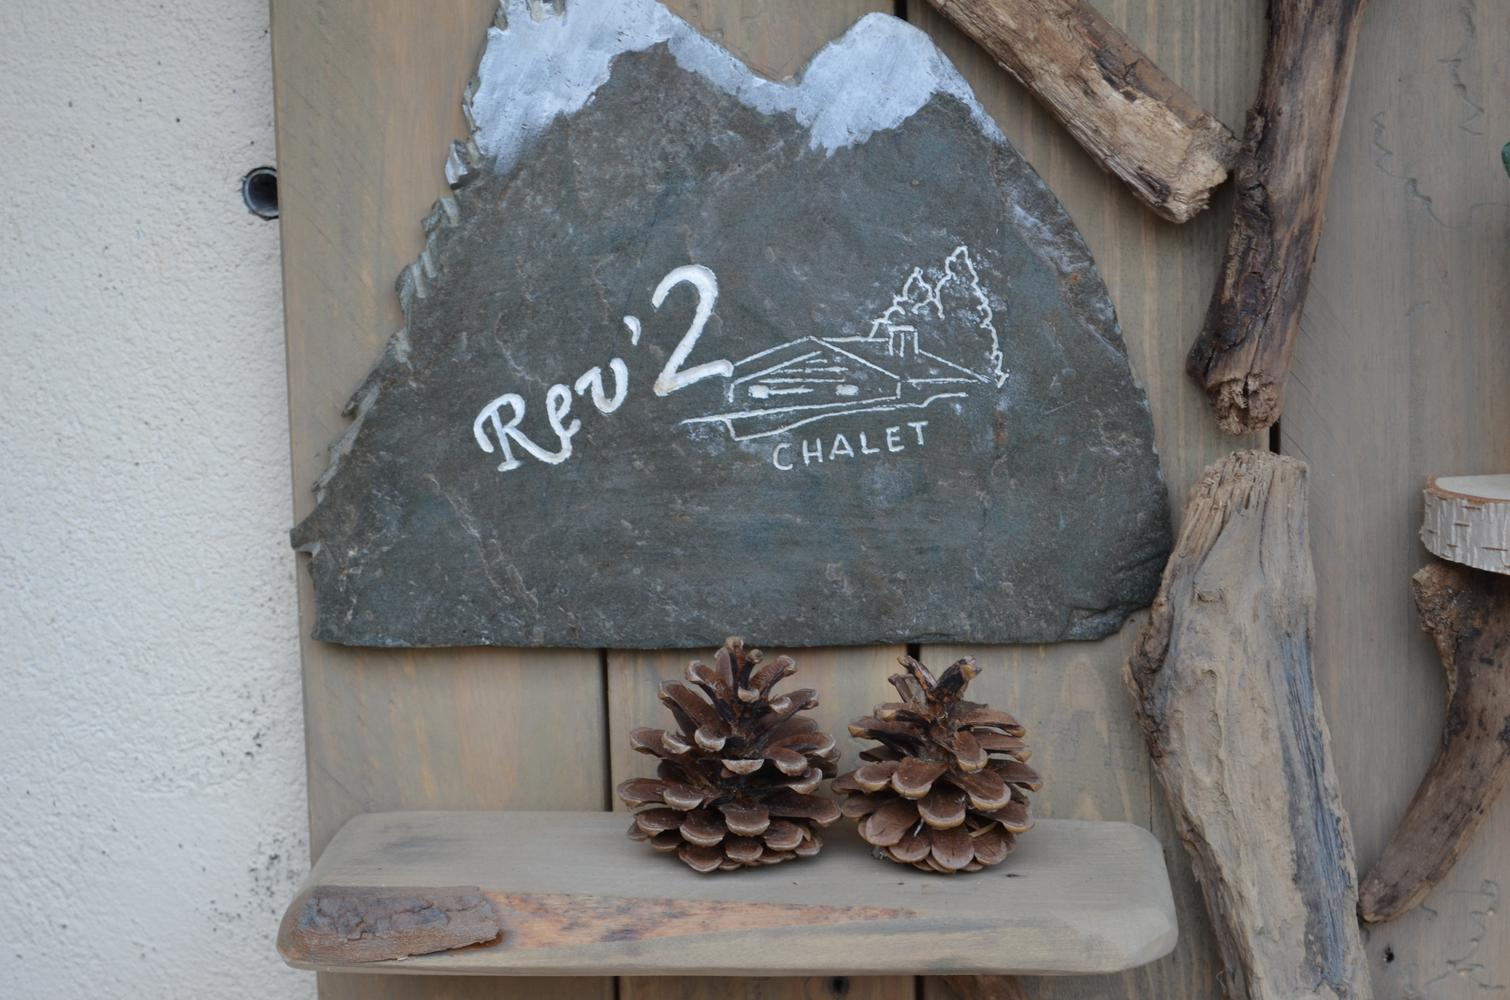 Rev'2 Chalet, Vosges - photo #22